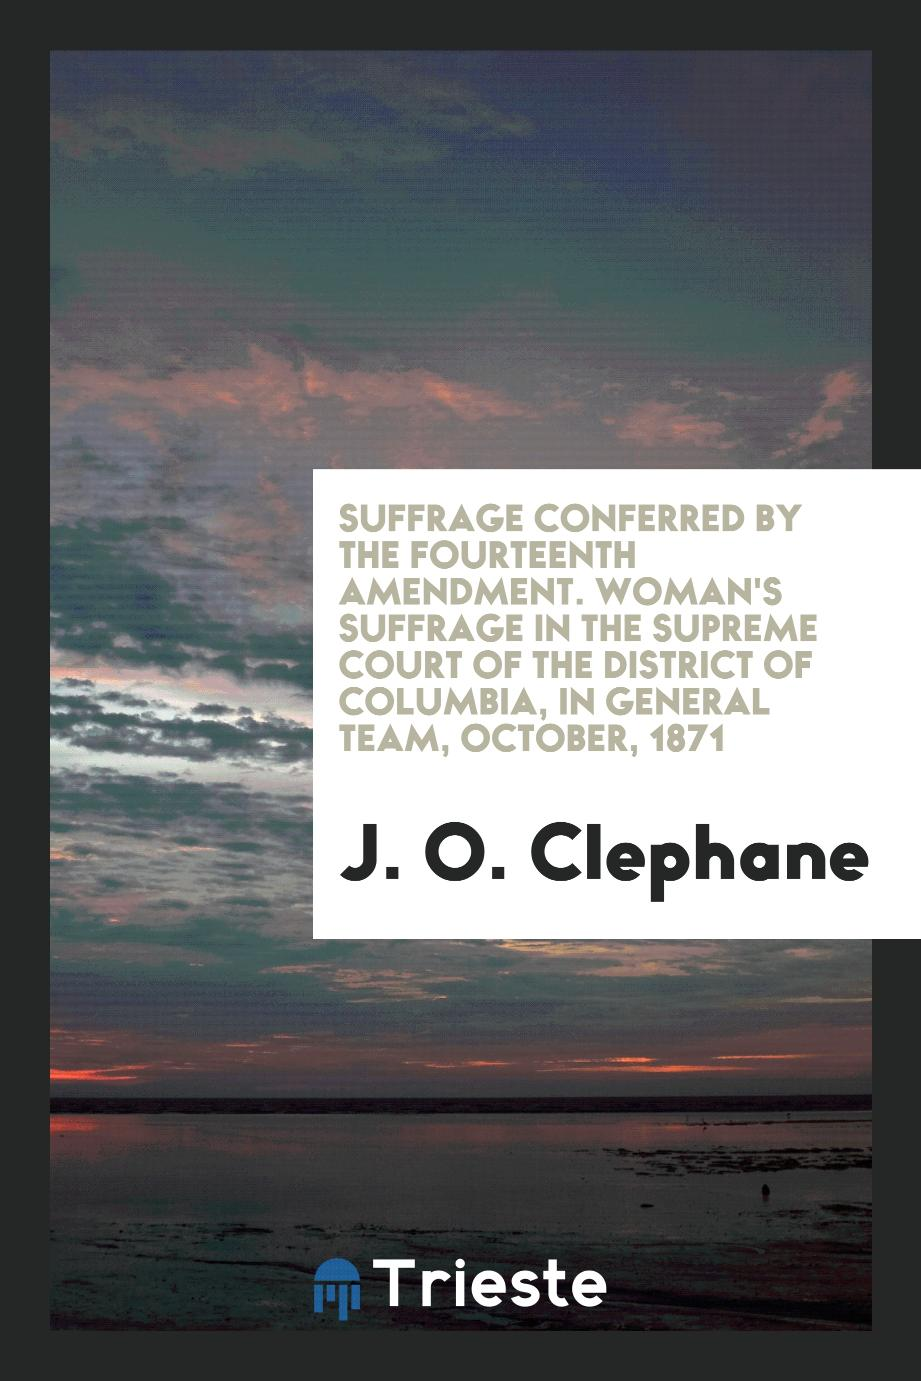 Suffrage Conferred by the Fourteenth Amendment. Woman's Suffrage in the Supreme Court of the district of Columbia, in general team, October, 1871